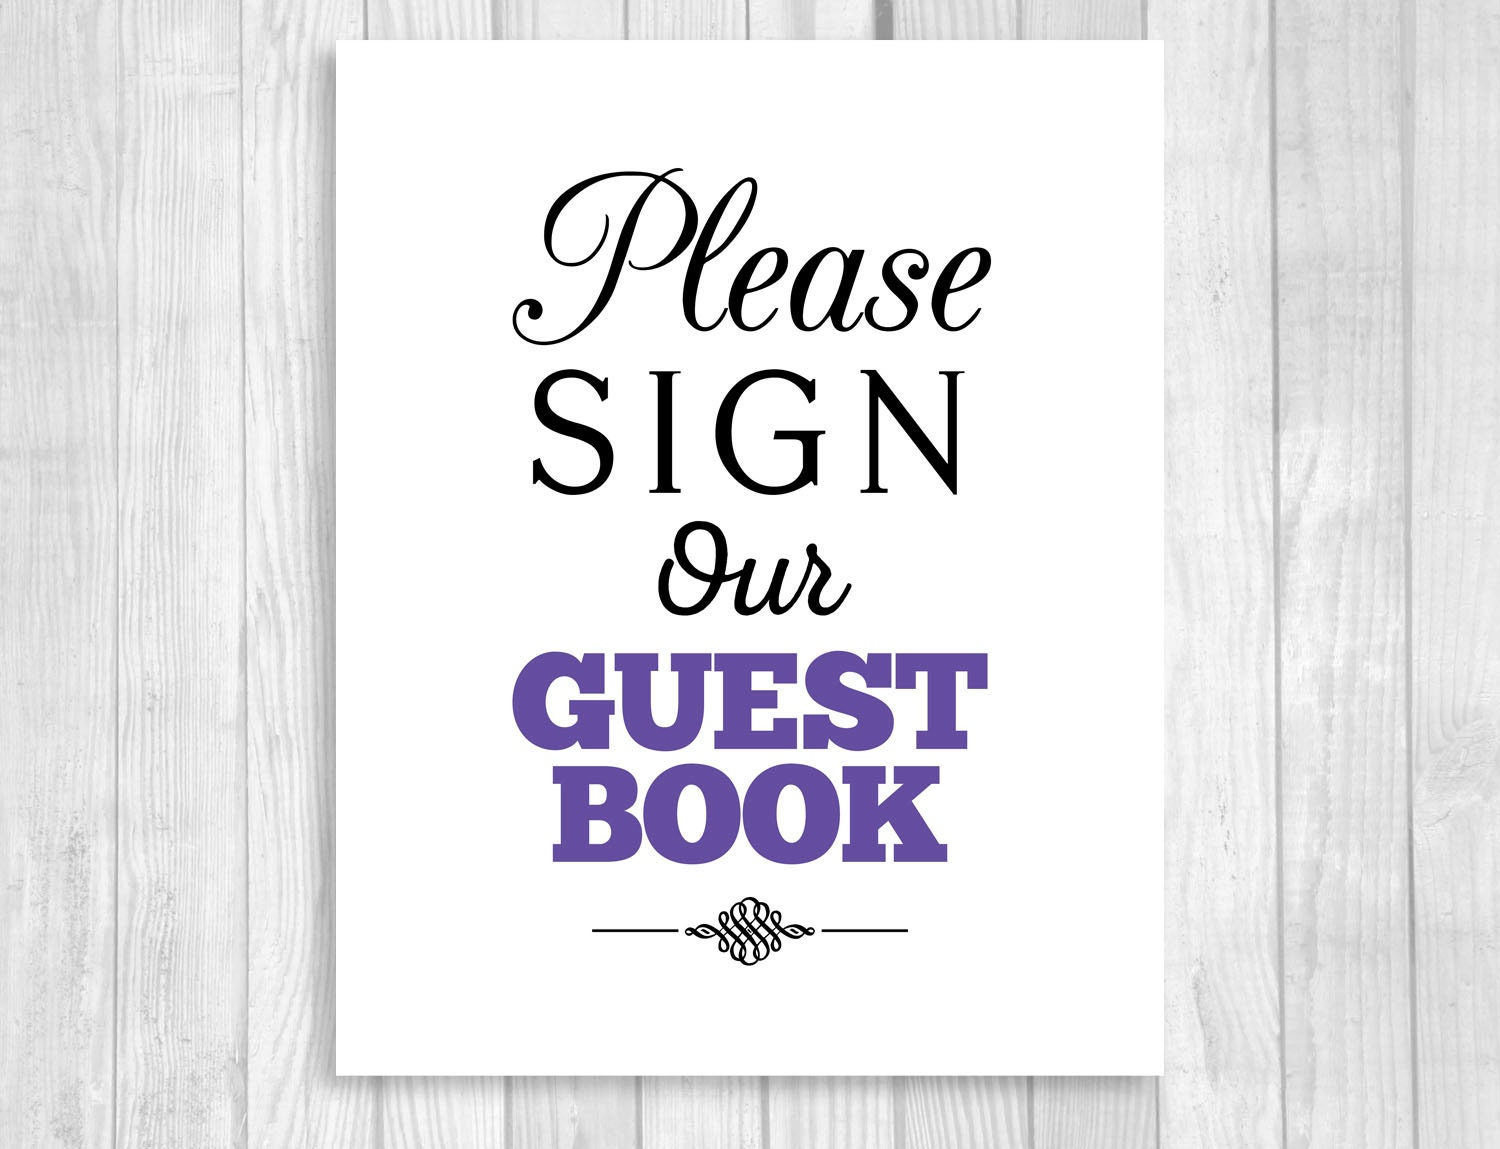 This is an image of Fan Please Sign Our Guestbook Free Printable